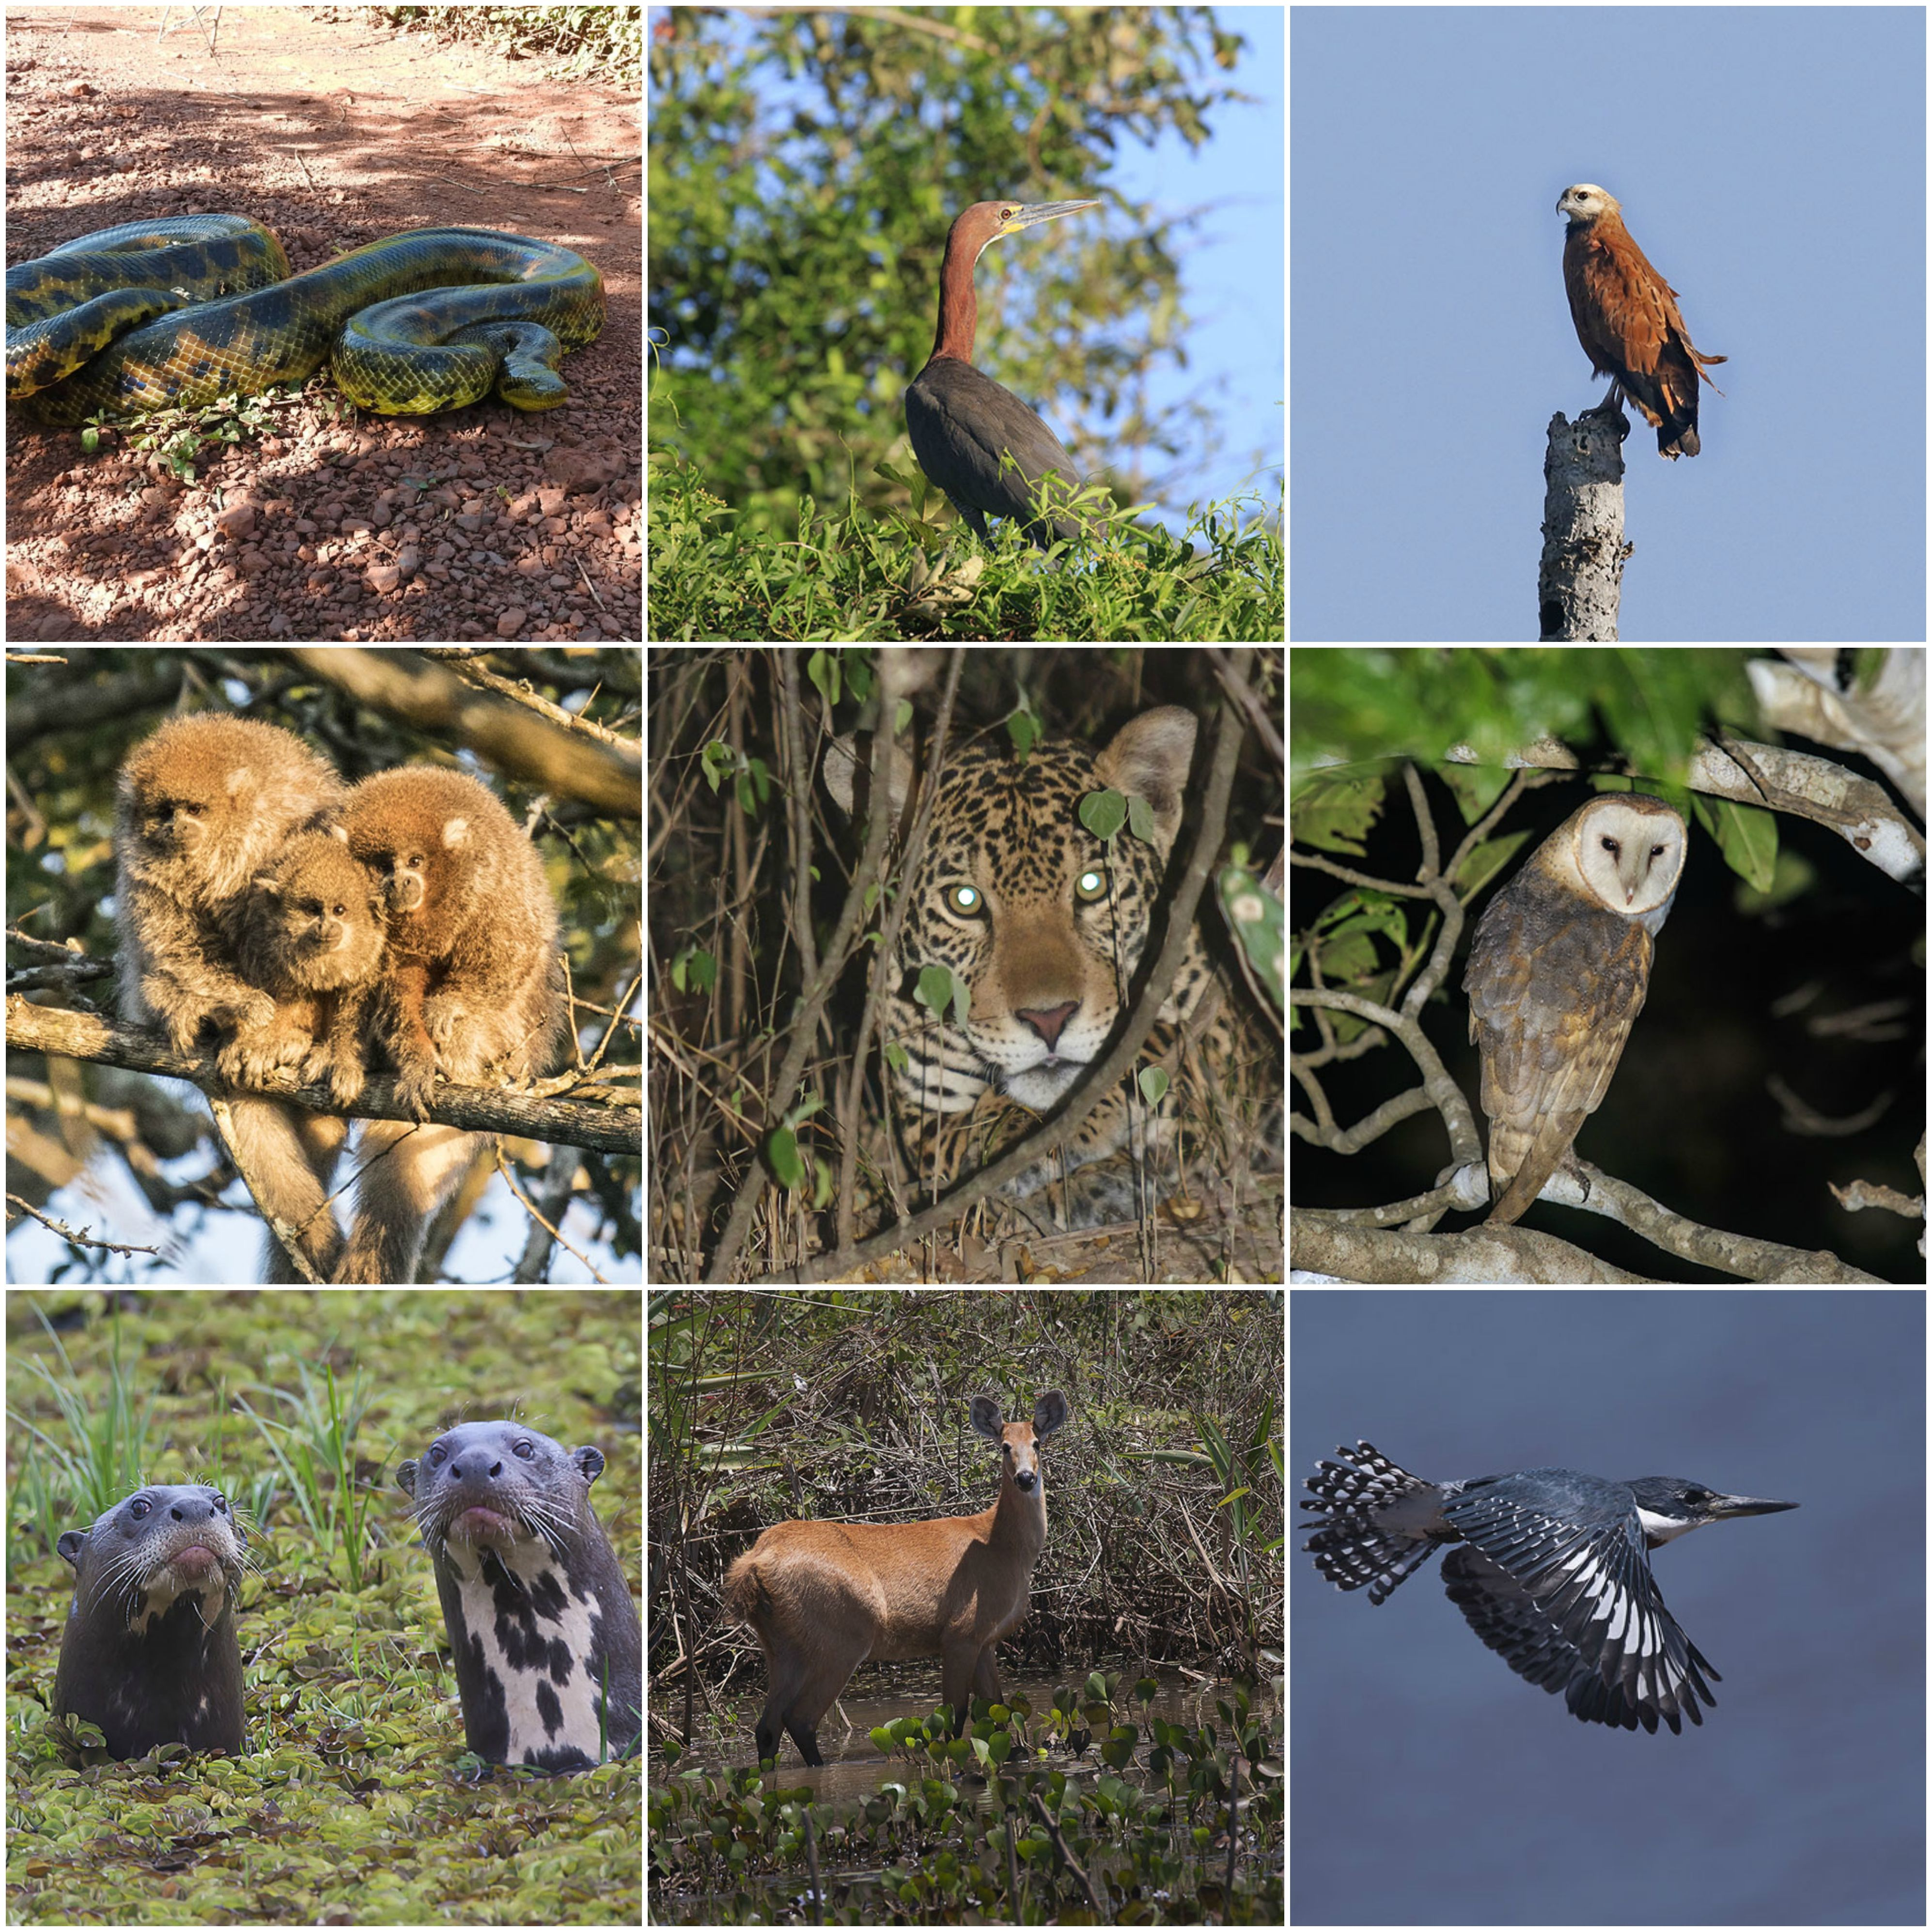 collage-sanmigueliuto-pantanal